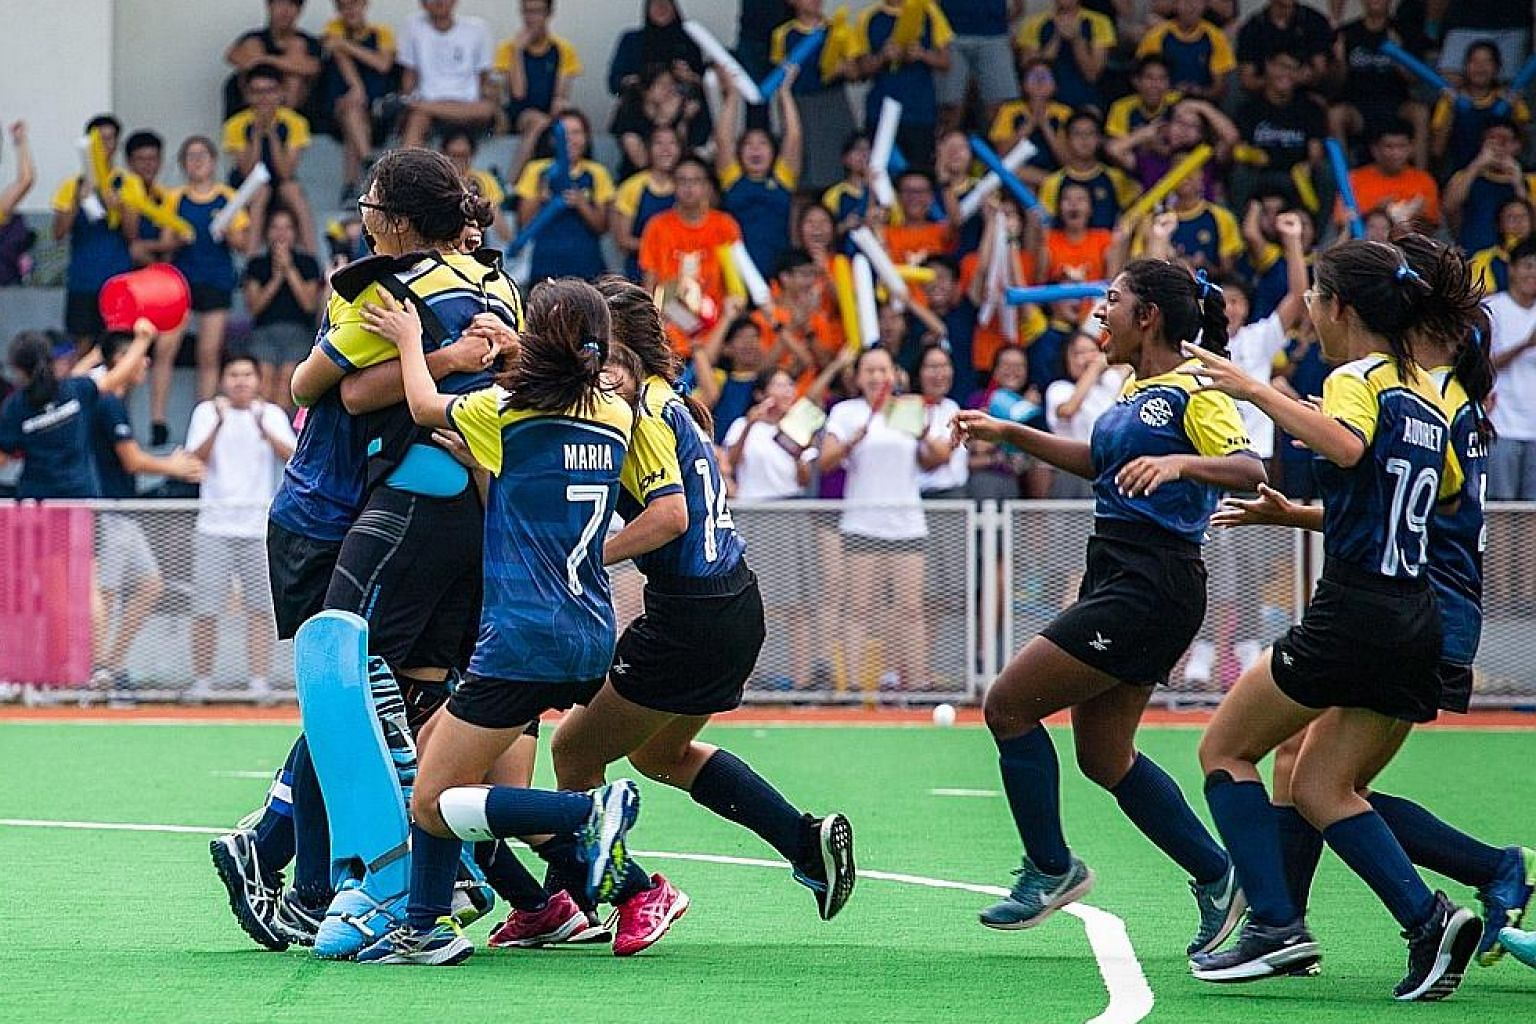 Euphoria for Eunoia Junior College as their girls' hockey team win the school's first A Division title in any sport. Their goalkeeper continued her clean-sheet feat while their captain made the only penalty conversion in the shoot-out.